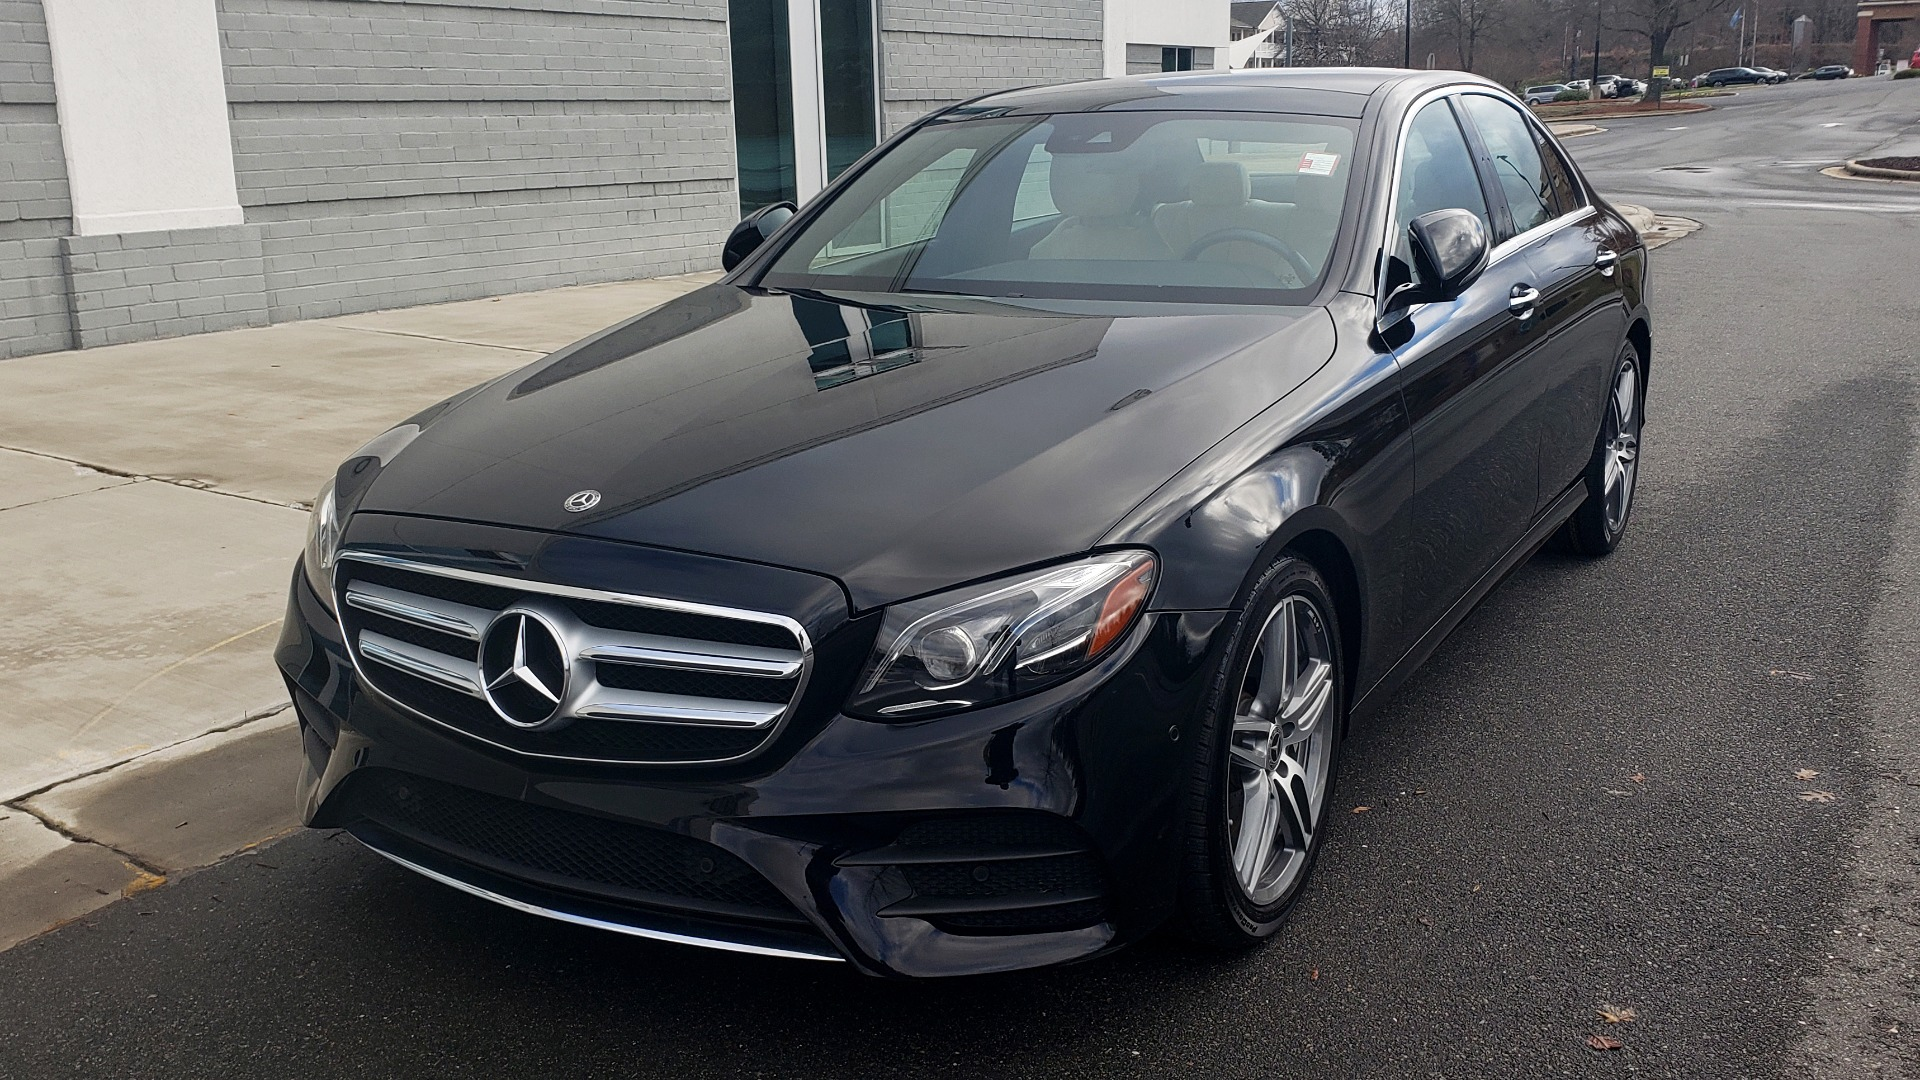 Used 2018 Mercedes-Benz E-CLASS E 300 PREM PKG 2 / NAV / PANO-ROOF / WARMTH & COMFORT PKG for sale $35,295 at Formula Imports in Charlotte NC 28227 5